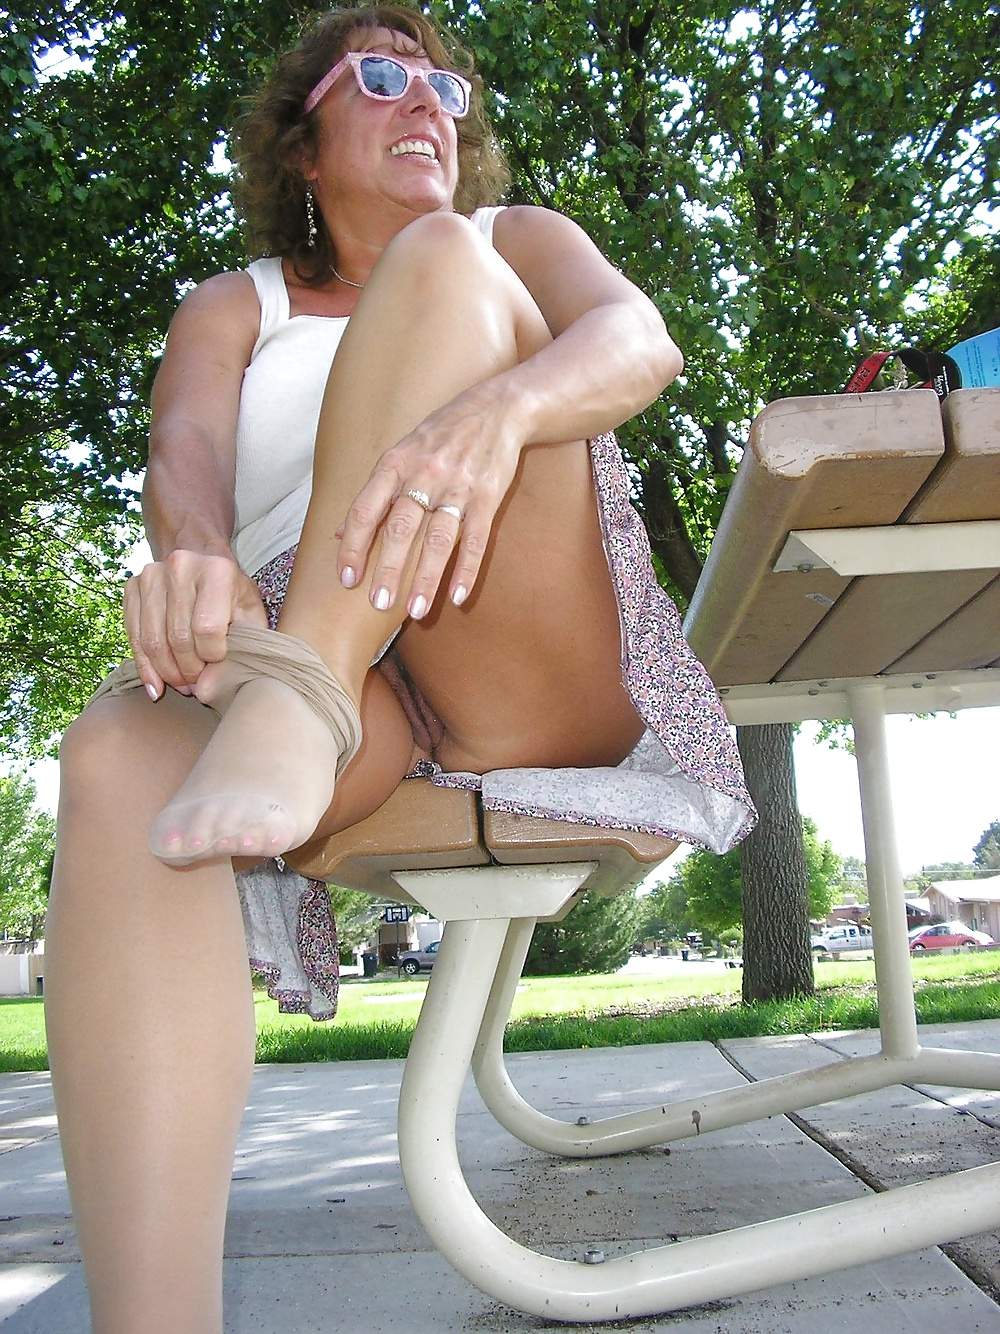 Ameture sexy upskirt woman 10